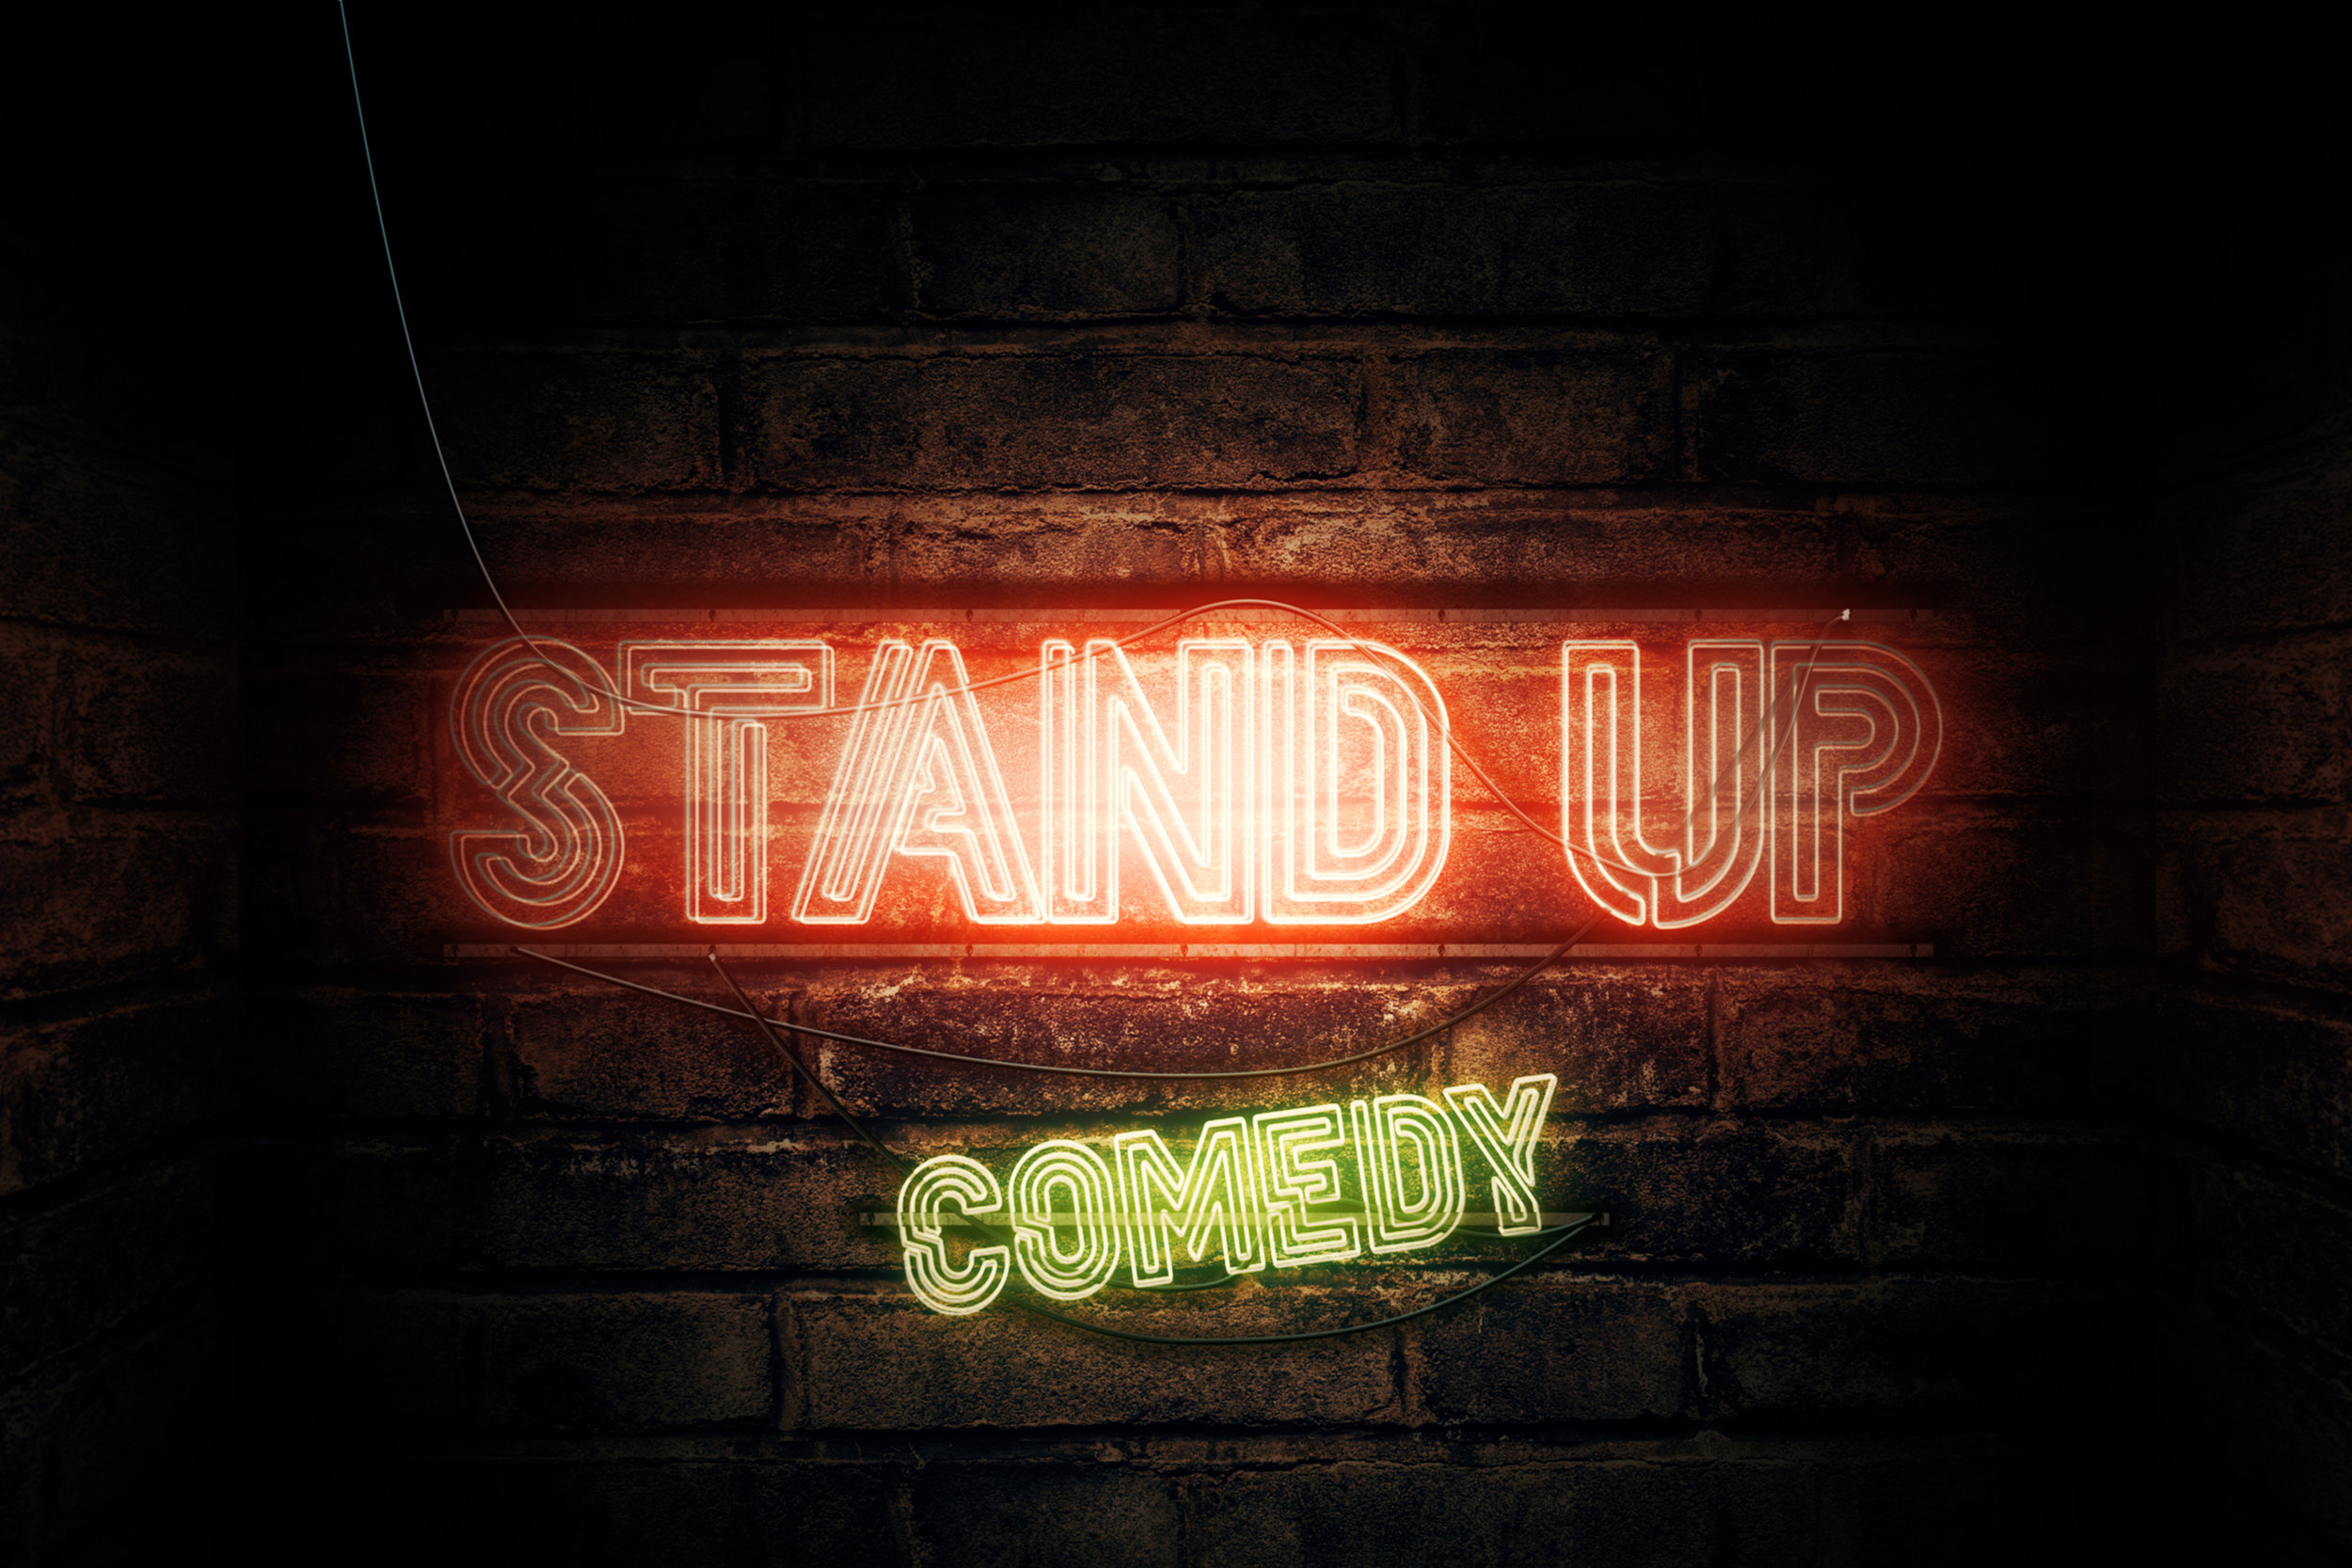 Stand Up Comedian  - We're looking for professional comedians with experience in land based comedy clubs, cruise ships, resorts, casinos and colleges. You must have an original family friendly and an adult (18+) show, each 30-55 minutes in length. Most of all, material needs to be funny!Comedians are typically away for three to seven days at a time.